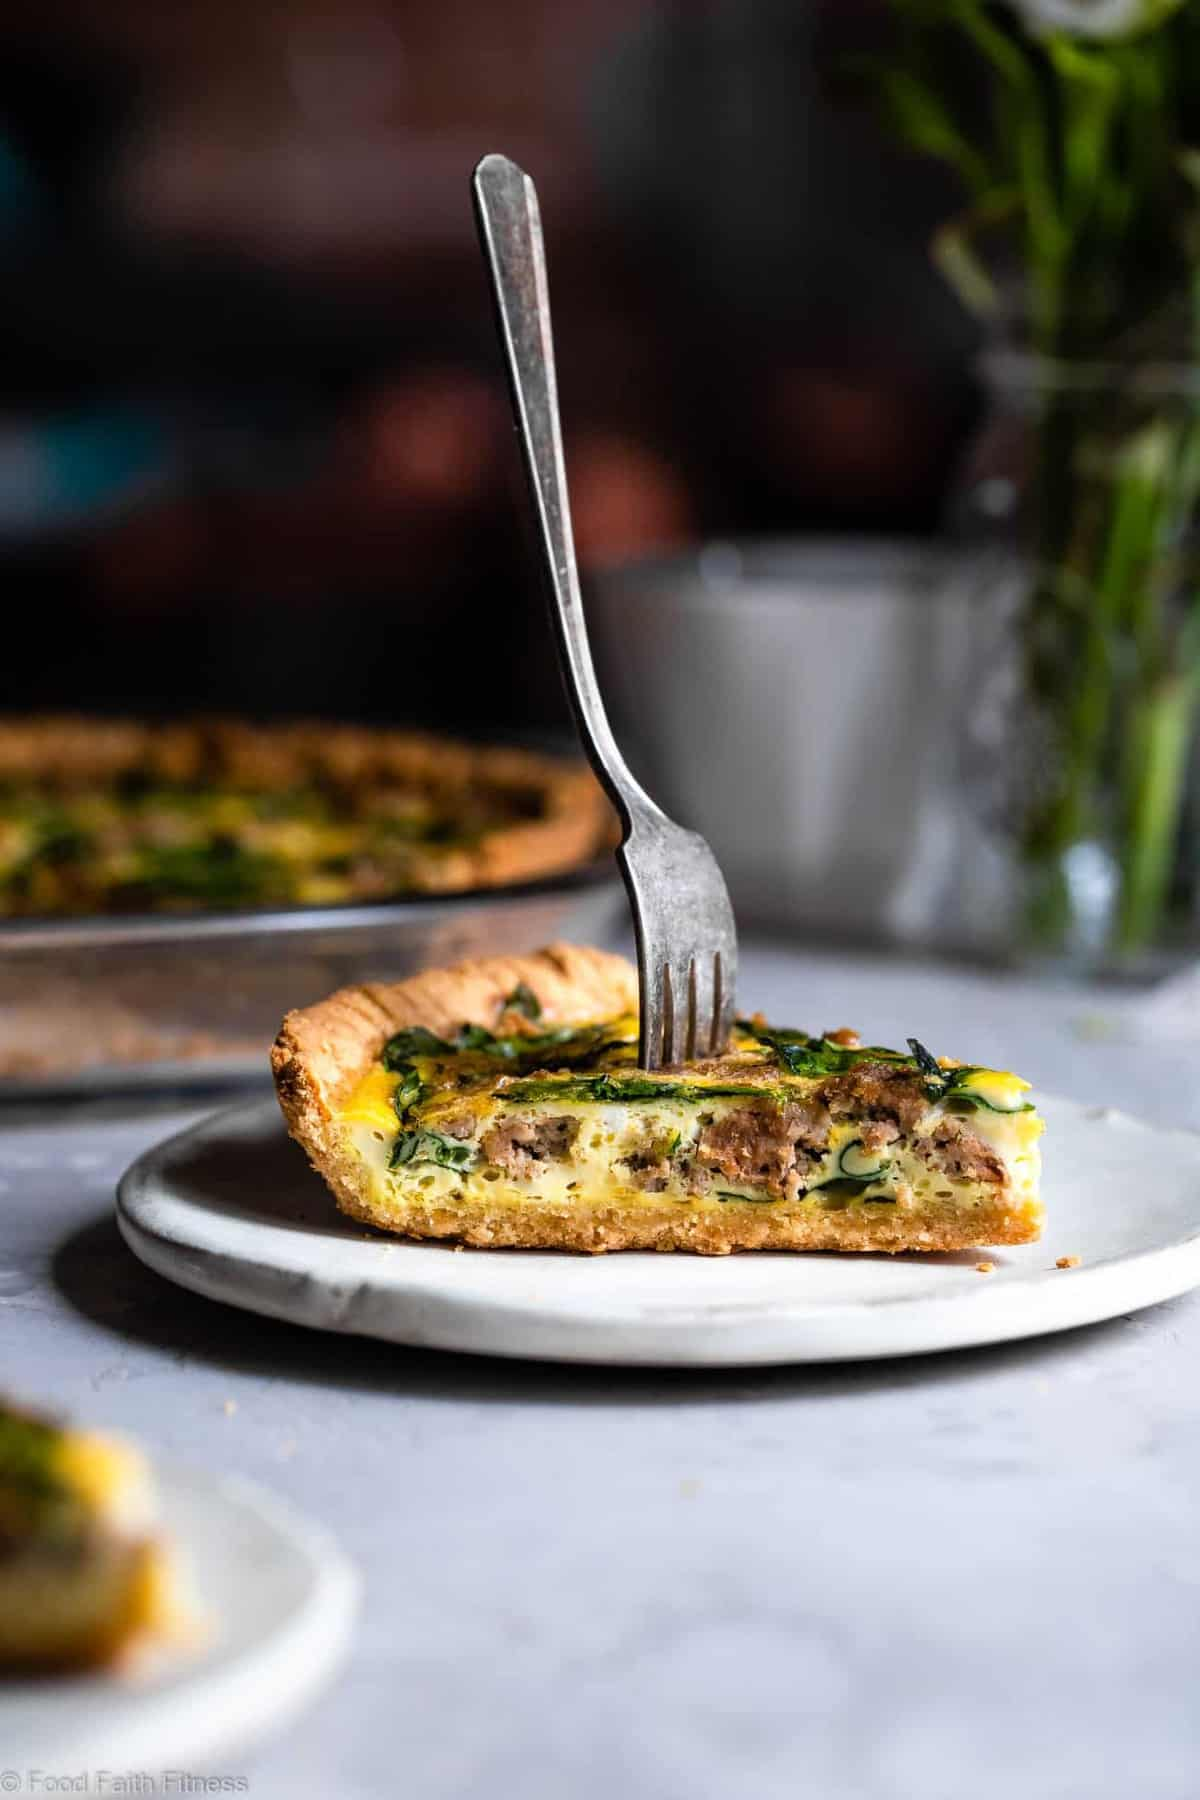 Gluten Free Low Carb Quiche - This EASY low carb, dairy free and paleo Quiche has a homemade, buttery, flaky Almond Flour Crust! Sausage, spinach and eggs make a high protein, filling breakfast!  Great for meal prep! | #Foodfaithfitness | #Glutenfree #Lowcarb #Keto #paleo #dairyfree